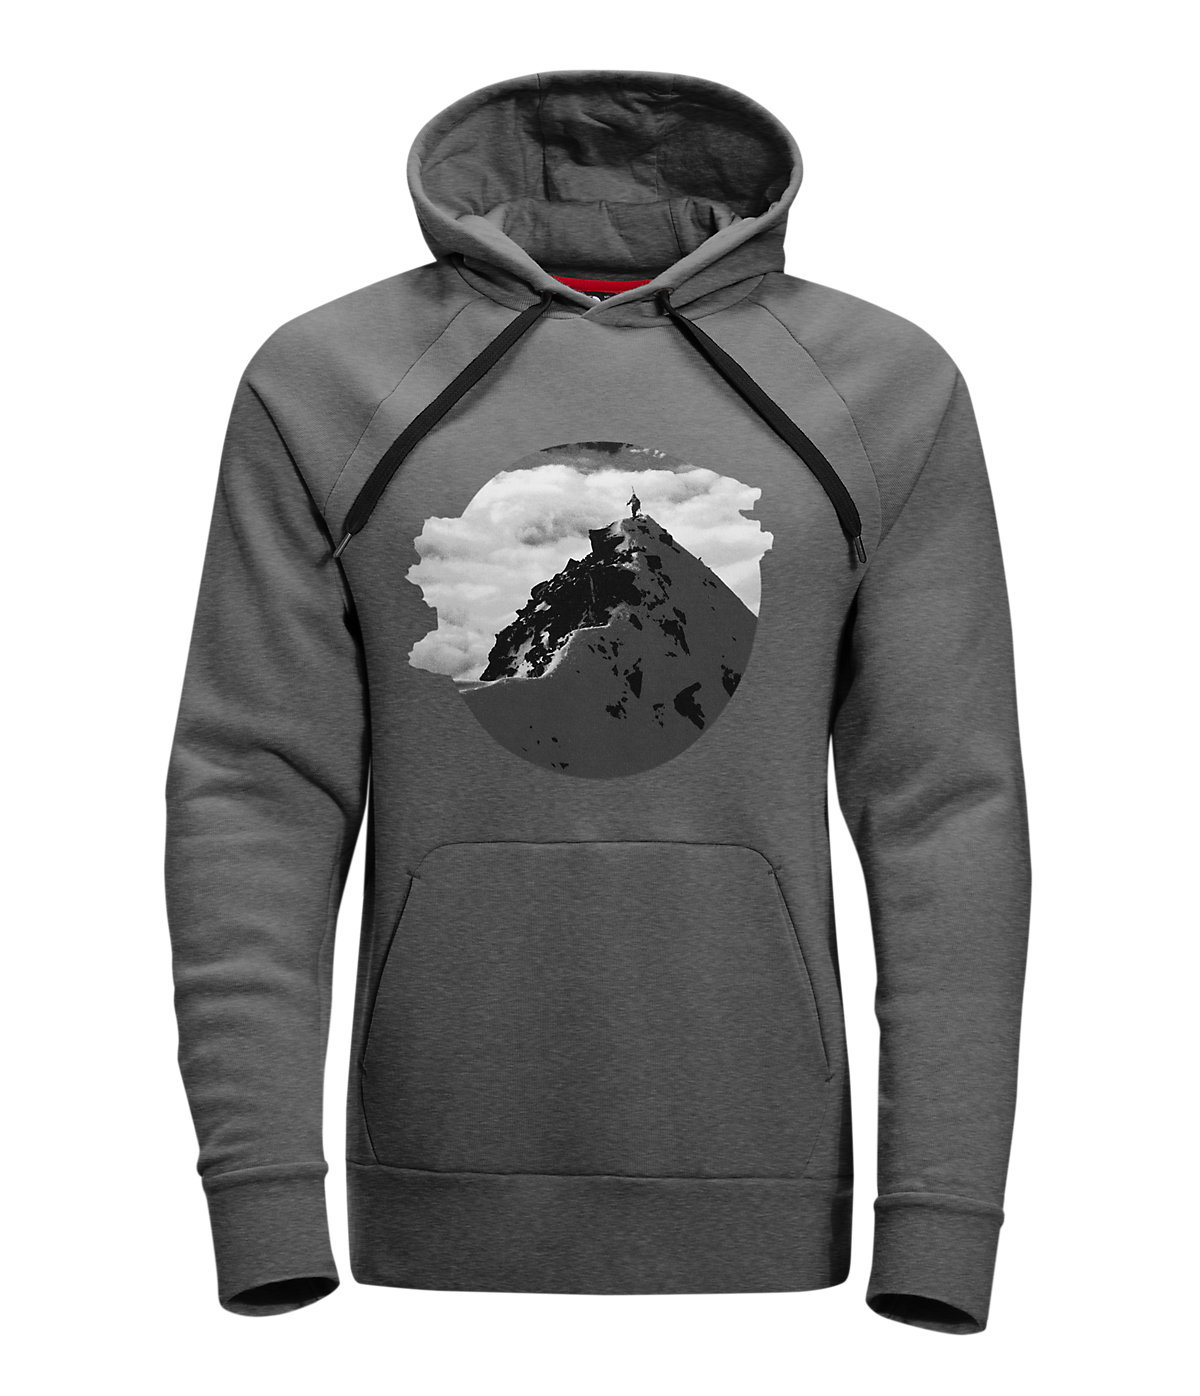 MEN'S JIMMY CHIN PULLOVER HOODIE